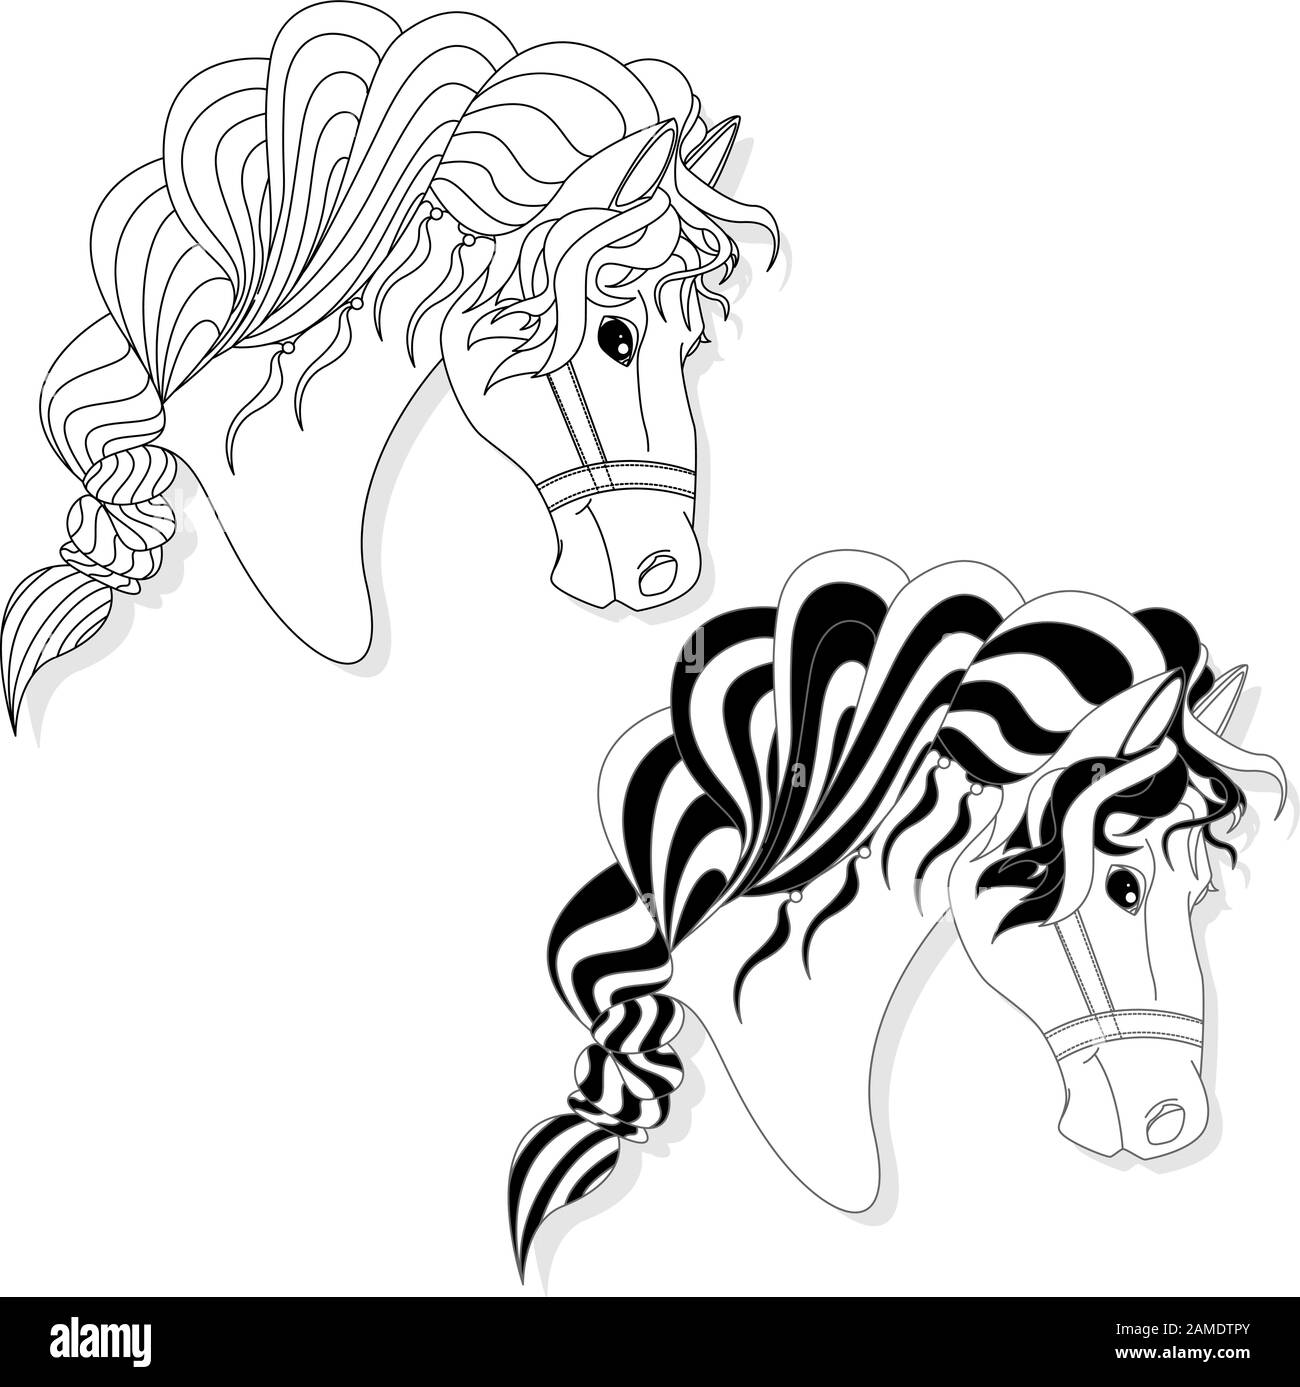 Vector Illustration Of Horse Head Clip Art Set Monochrome Image Colouring Page Stock Vector Image Art Alamy